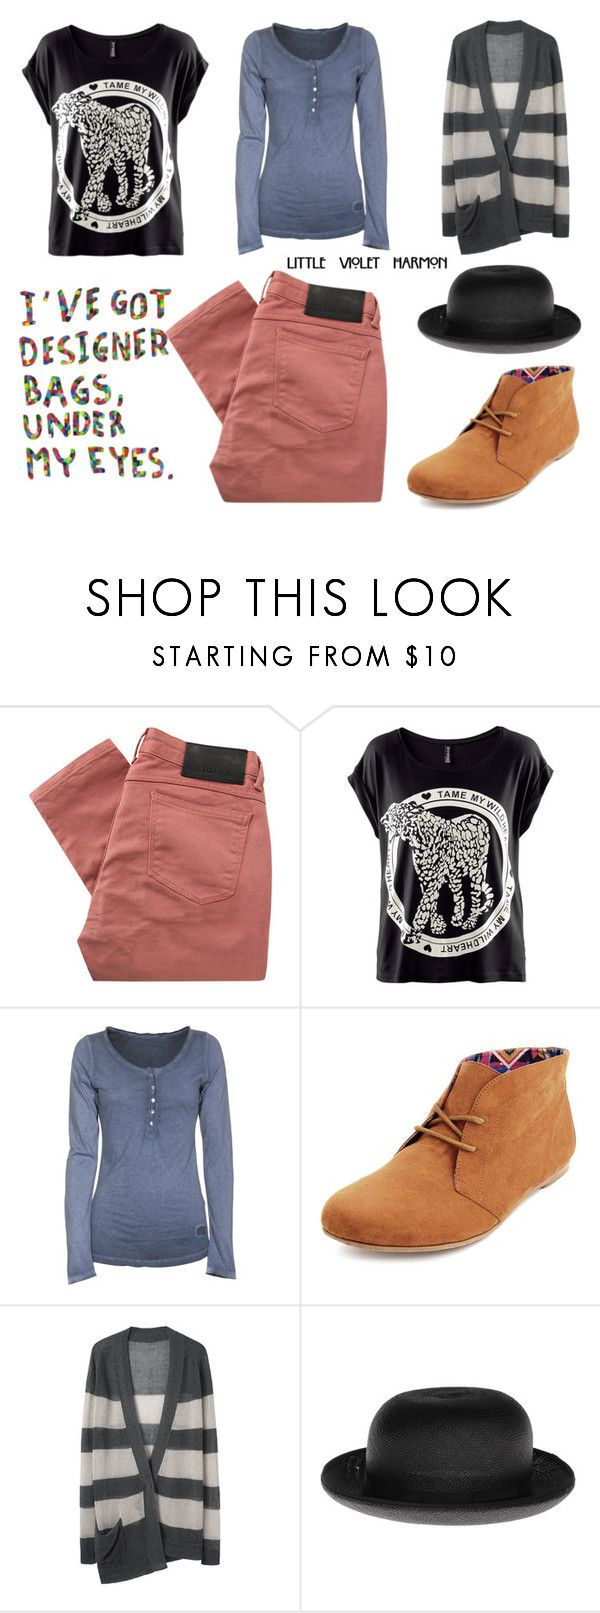 """""""black sheep"""" by littlevioletharmon ❤ liked on Polyvore featuring Religion Clothing, H&M, True Religion, Charlotte Russe, VPL, Christys', skinny jeans, oversized t-shirts, grunge and violet ahs"""